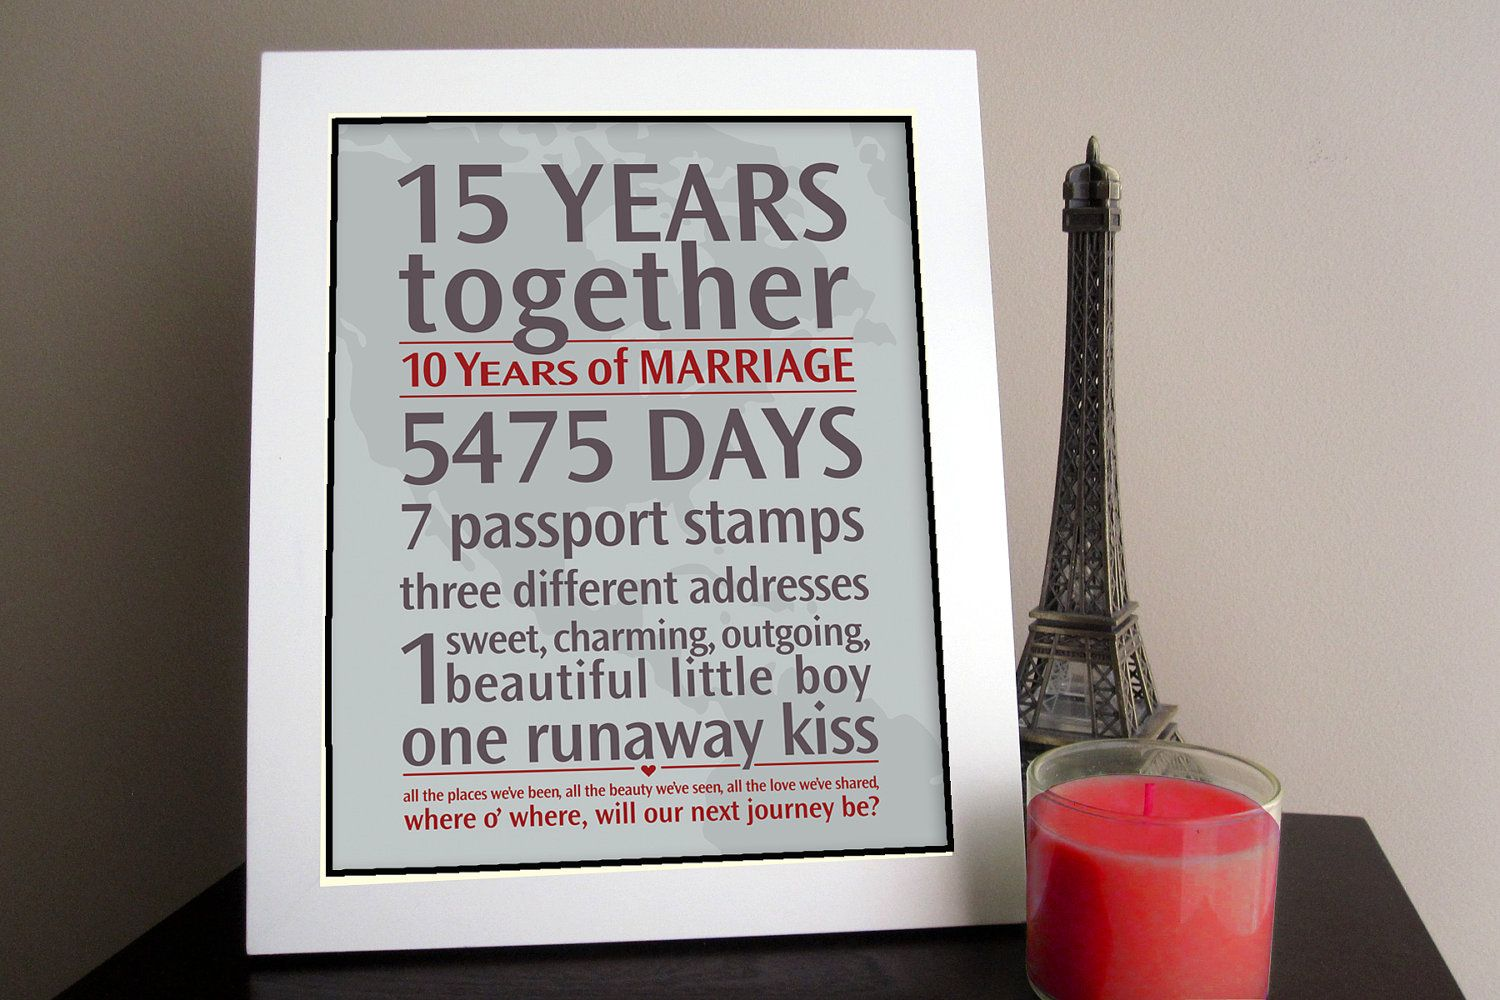 Diy personalized wedding anniversary gift your loves journey by diy personalized wedding anniversary gift your loves journey by the numbers printable solutioingenieria